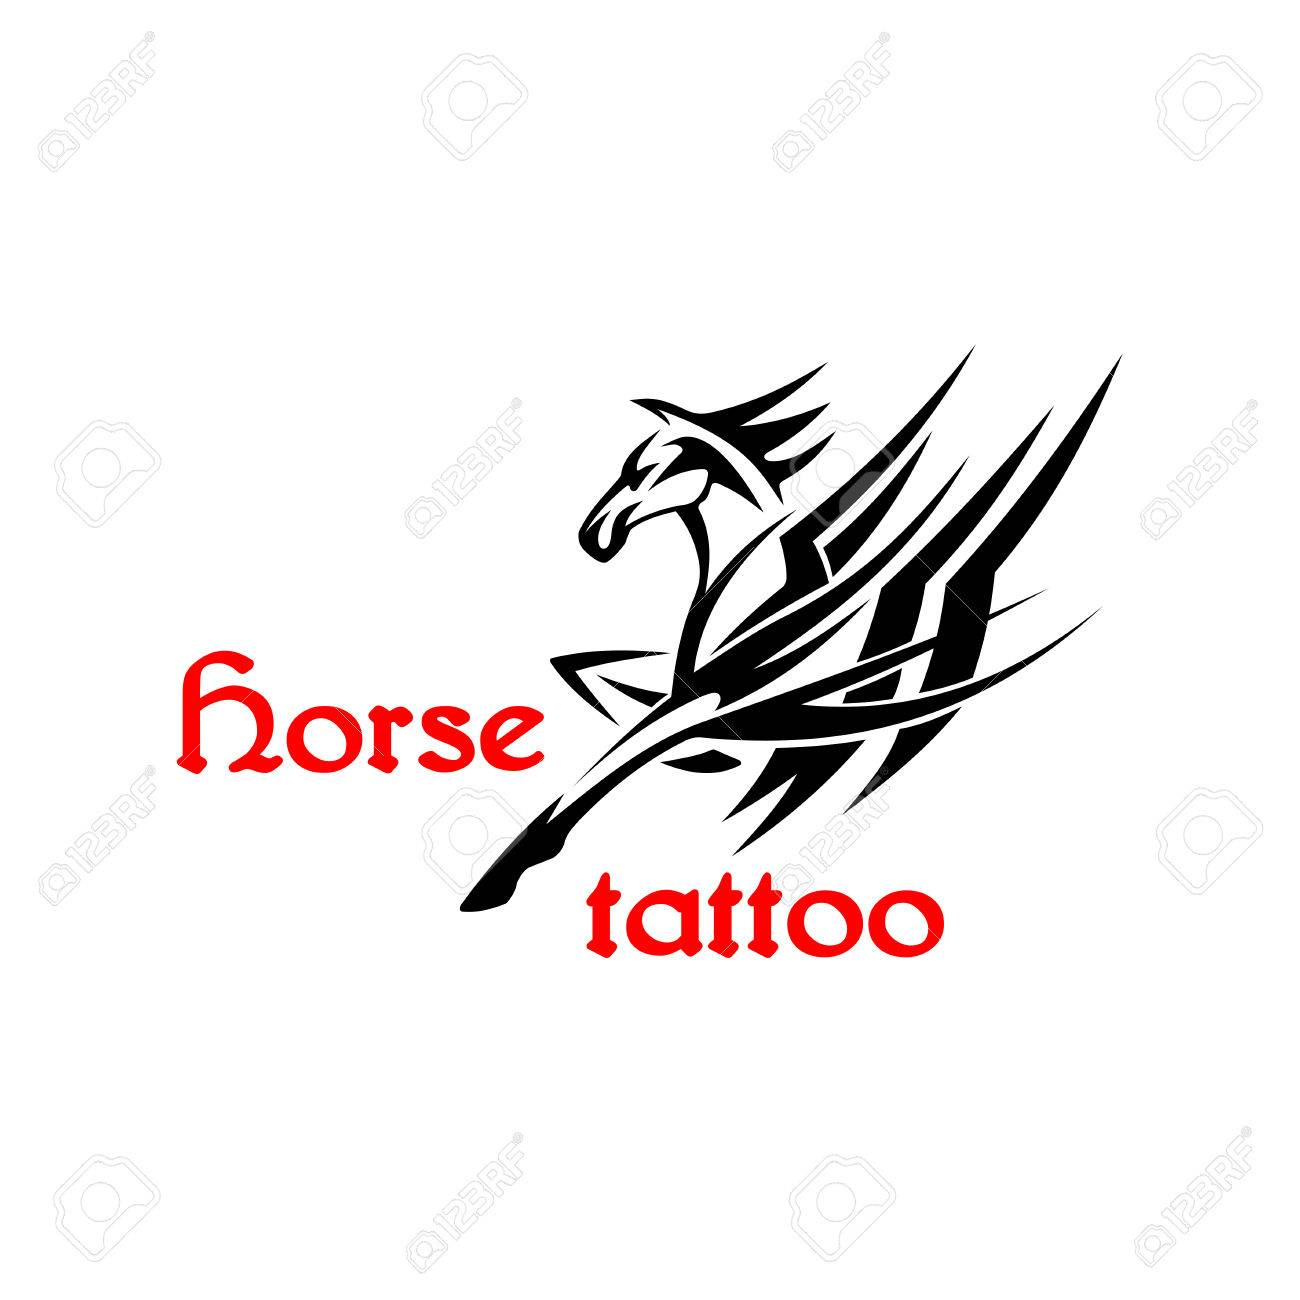 Design a t shirt horse - Running Horse Or Pegasus Symbol For Tattoo Or T Shirt Print Design Usage With Brutal